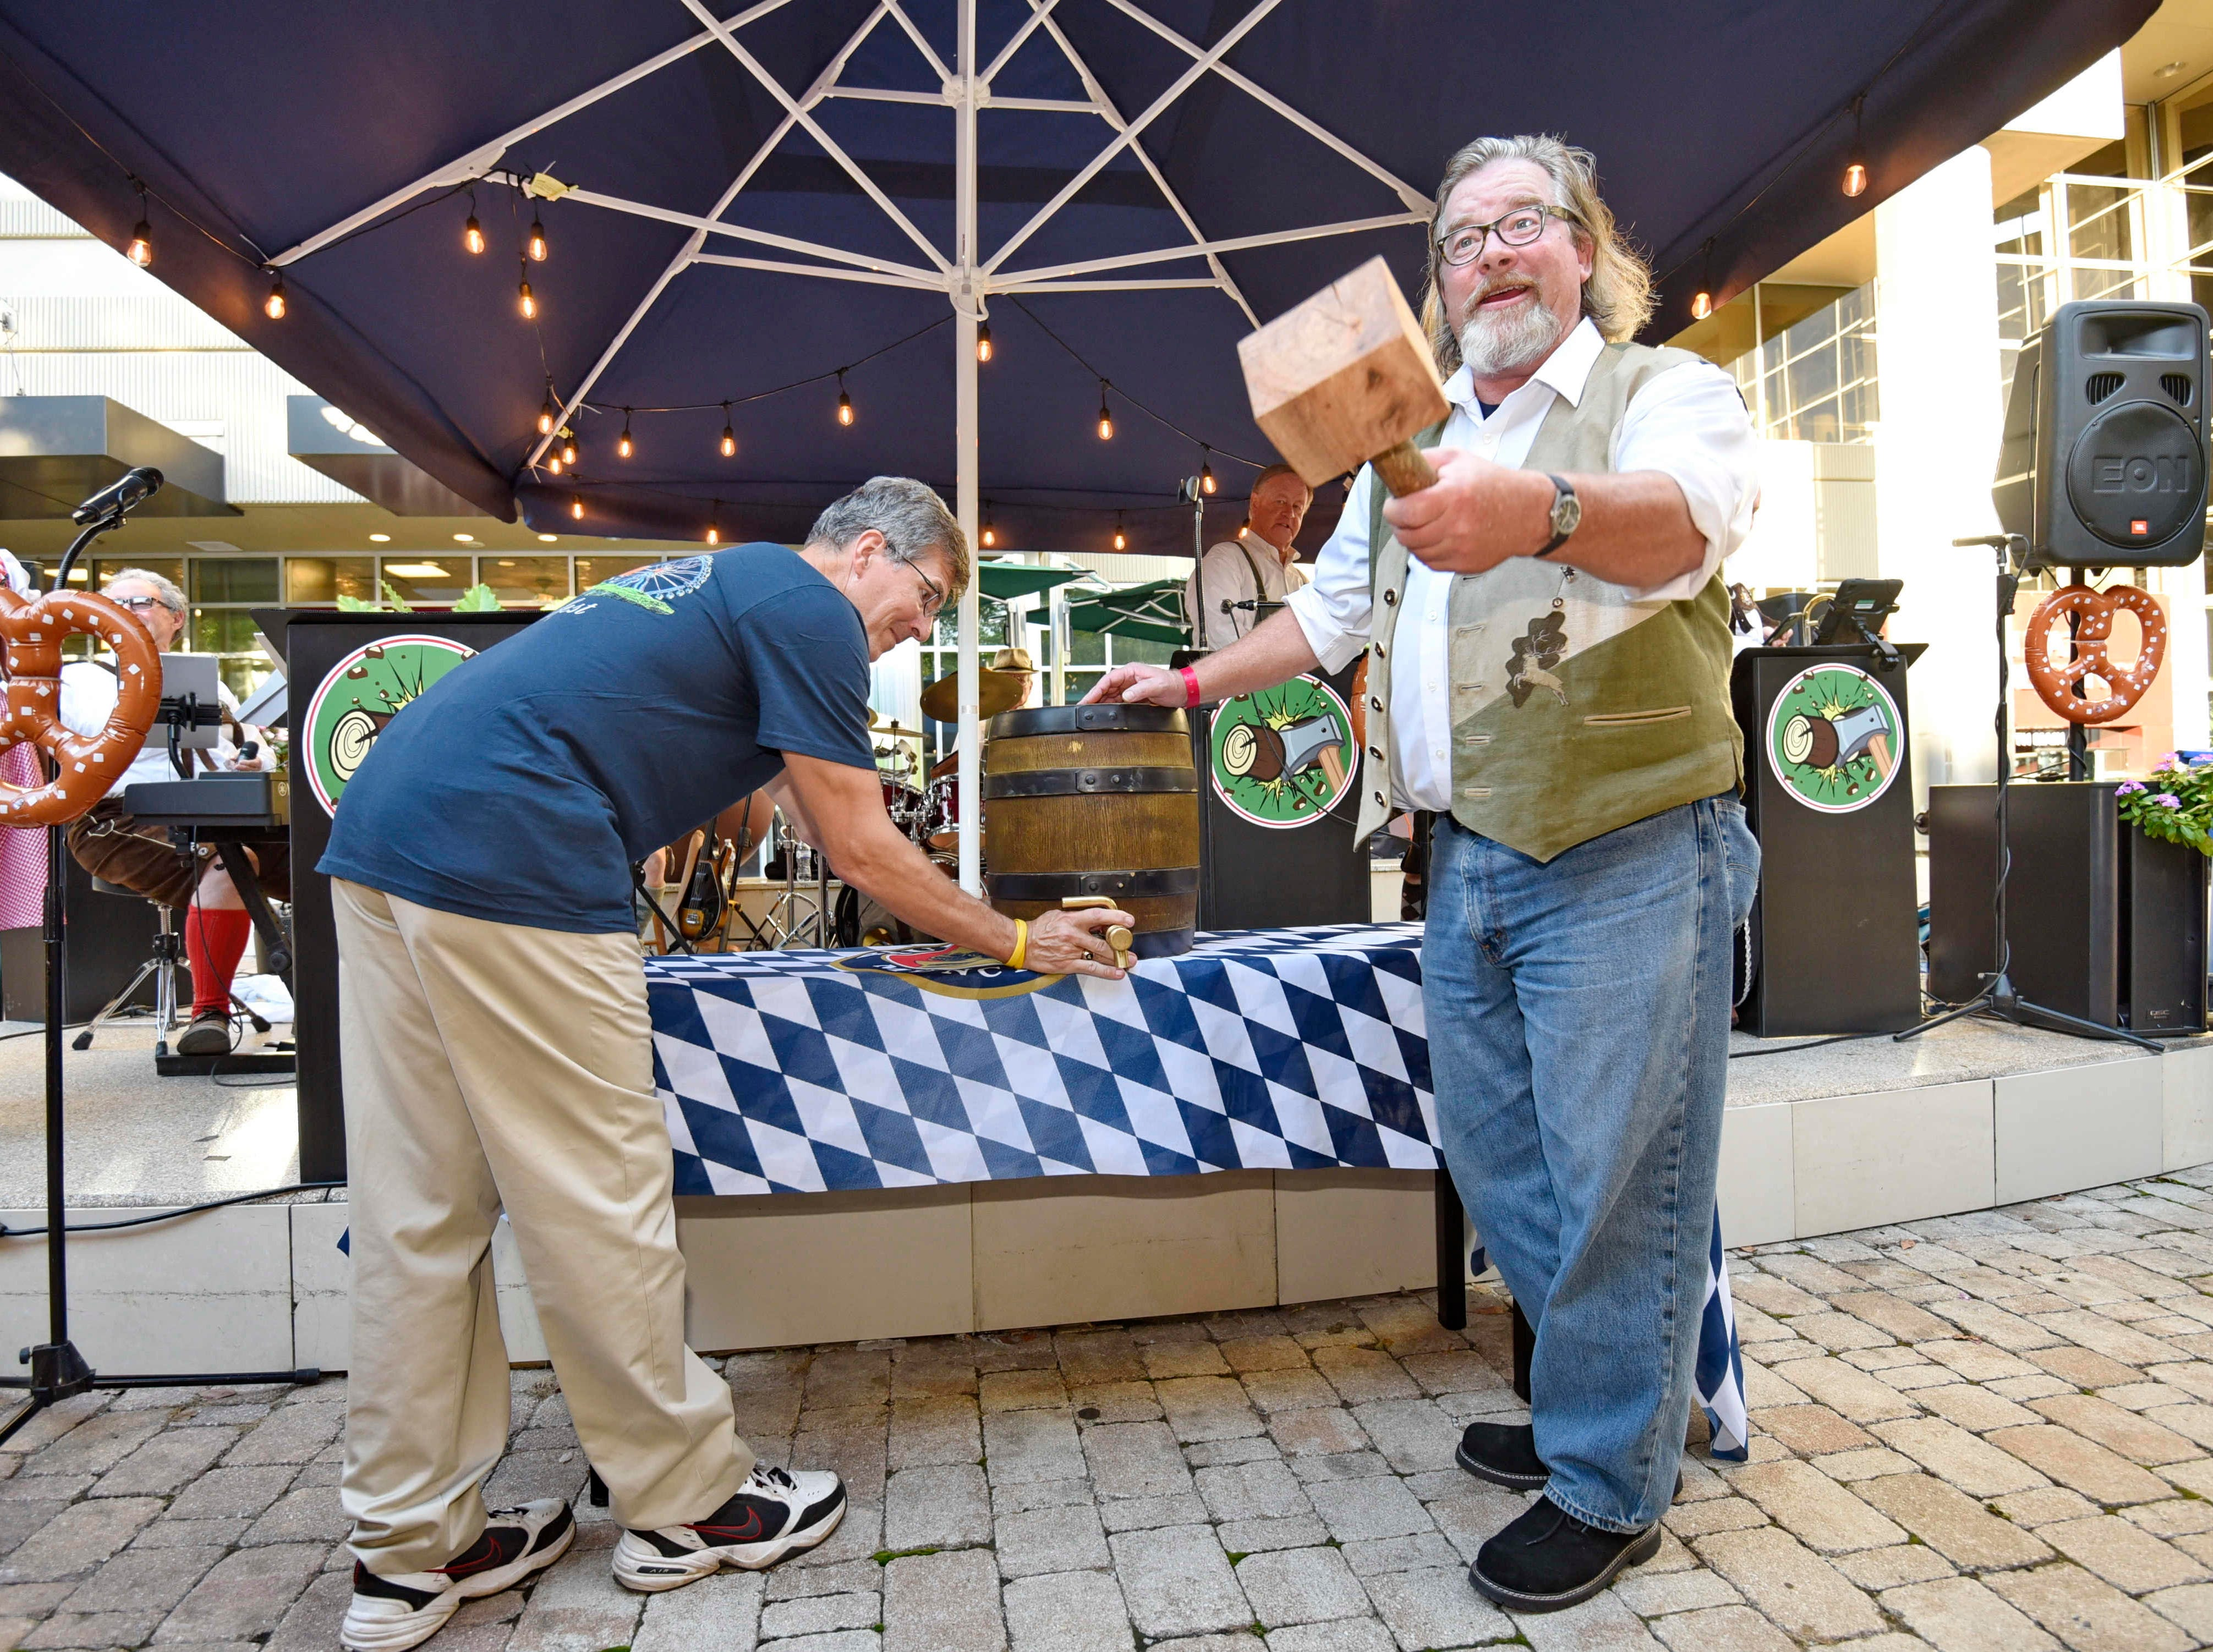 Jay Spivey of FETE Greenville, right, and Mel Arce tap the official keg to kick off Oktoberfest at NOMA Square in downtown Greenville Thursday, Oct. 4,  2018.